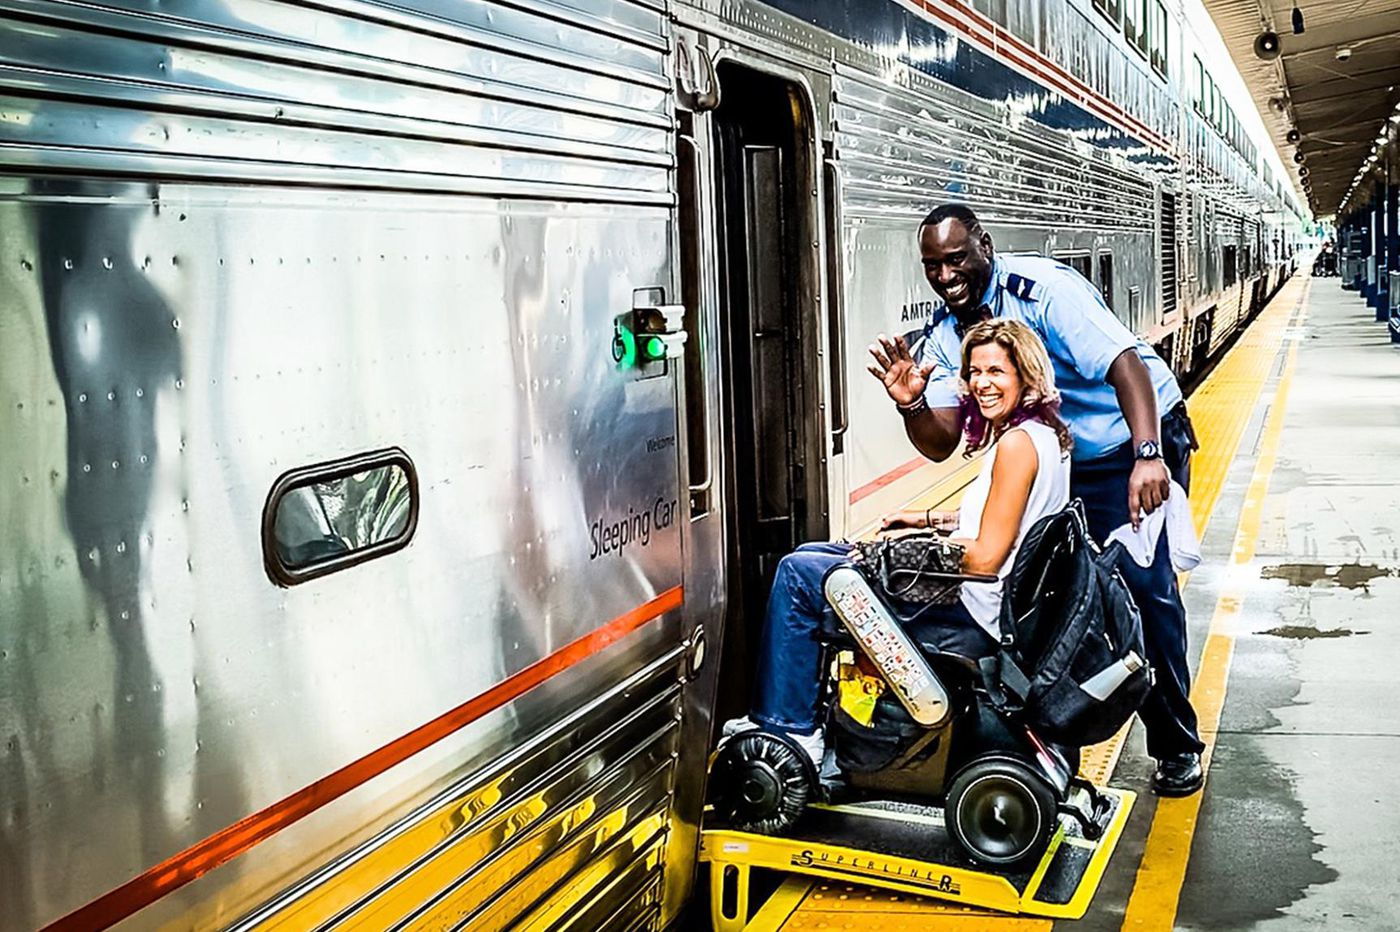 A travel insider offers a different view of Amtrak's Auto Train